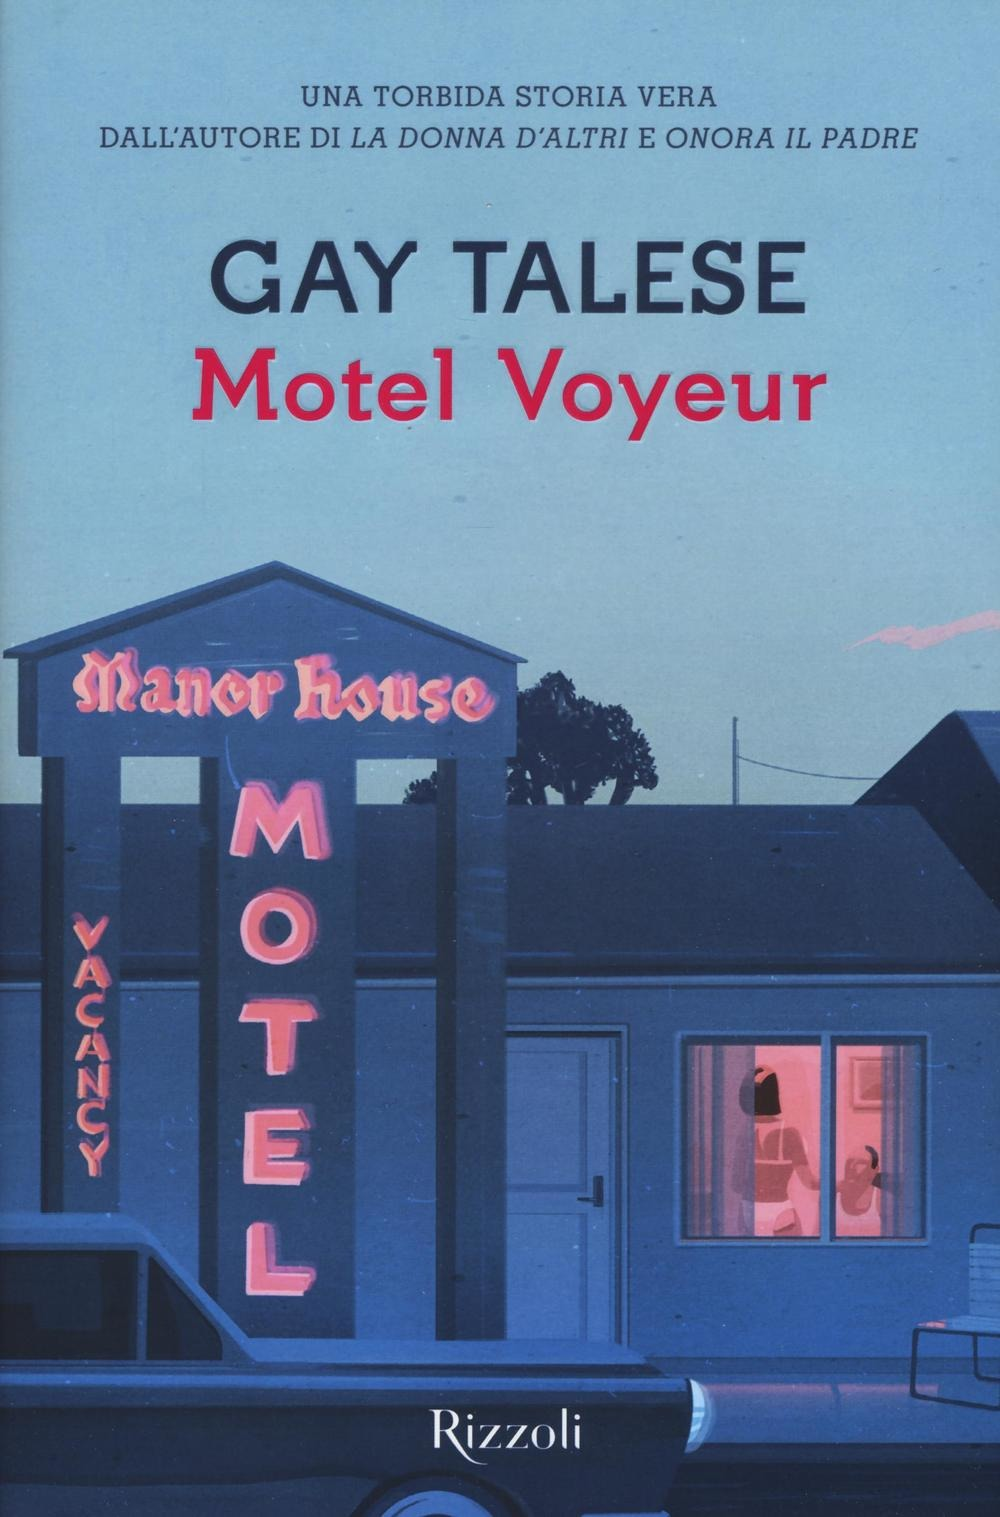 Motel voyeur Book Cover